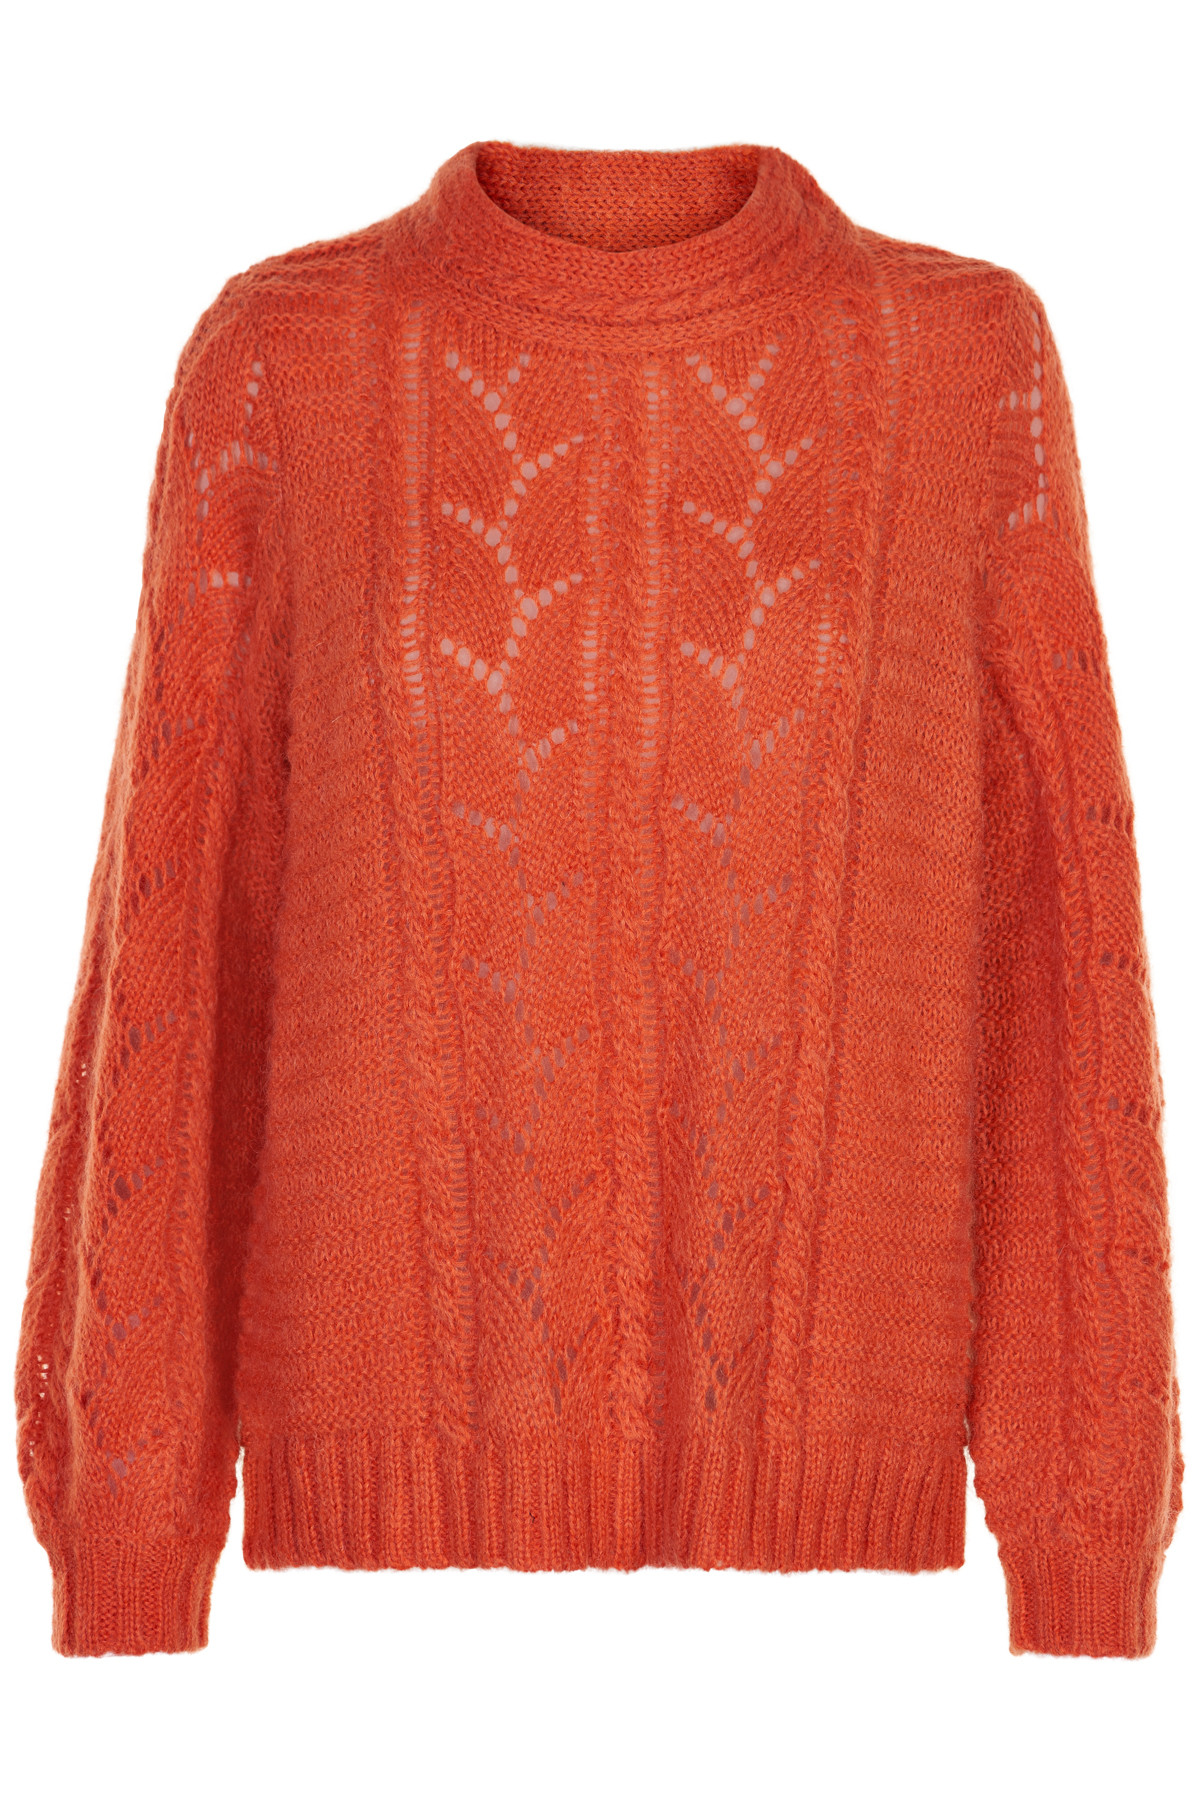 Image of   NOA NOA PULLOVER 1-9877-1 00883 (Red, S)